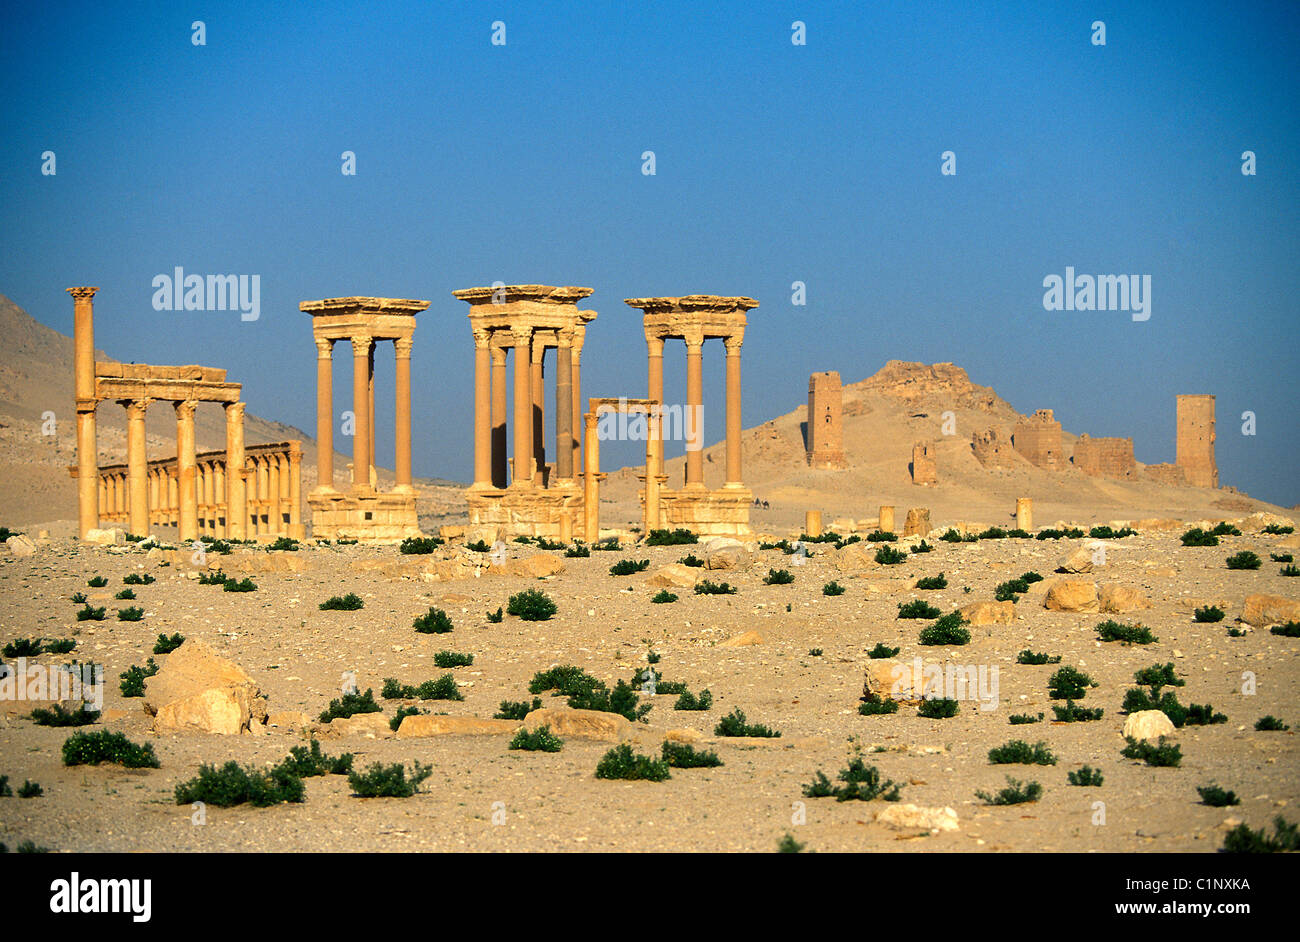 Syria Palmyra Site Listed As World Heritage By Unesco Stock